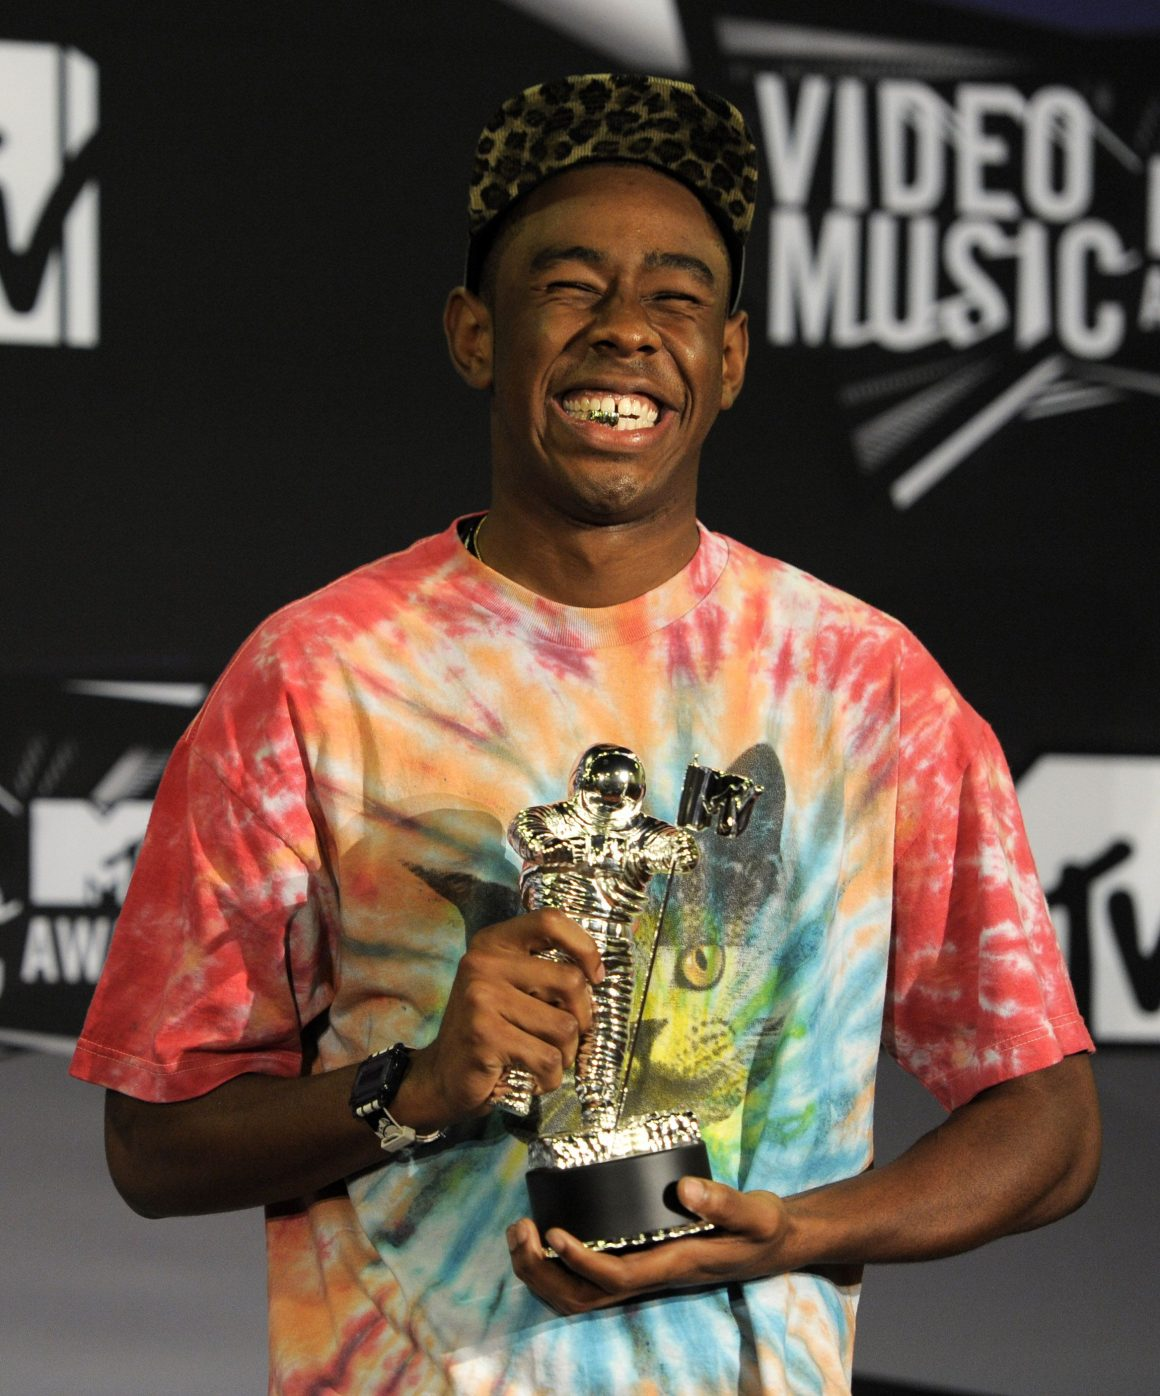 Tyler, the Creator: The Godfather of the Next Generation